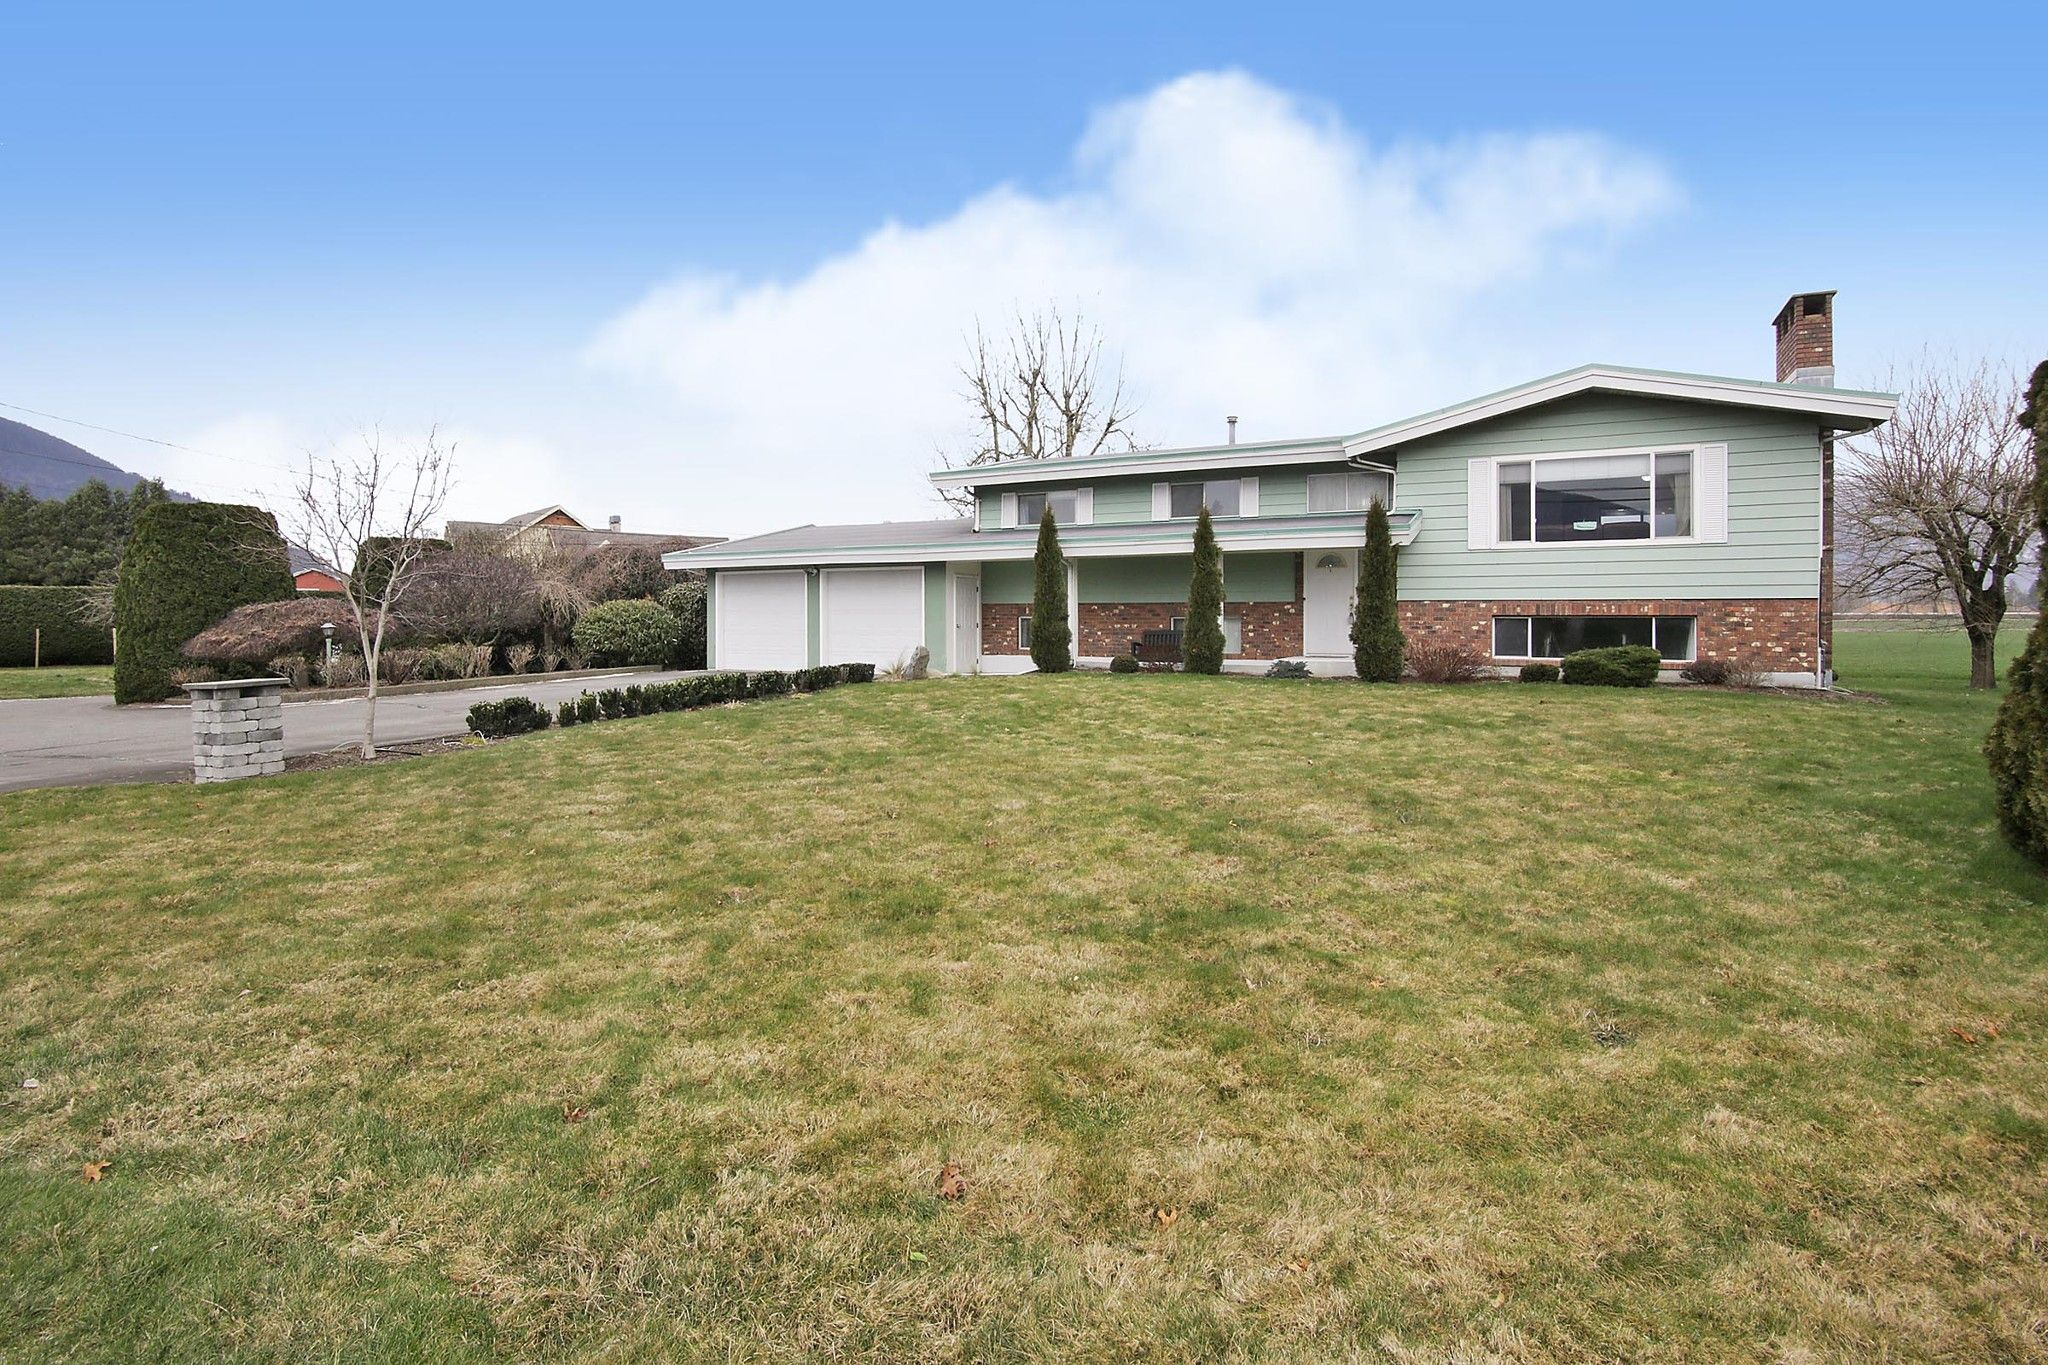 Main Photo: 42505 YALE Road in Chilliwack: Greendale Chilliwack House for sale (Sardis)  : MLS®# R2537135